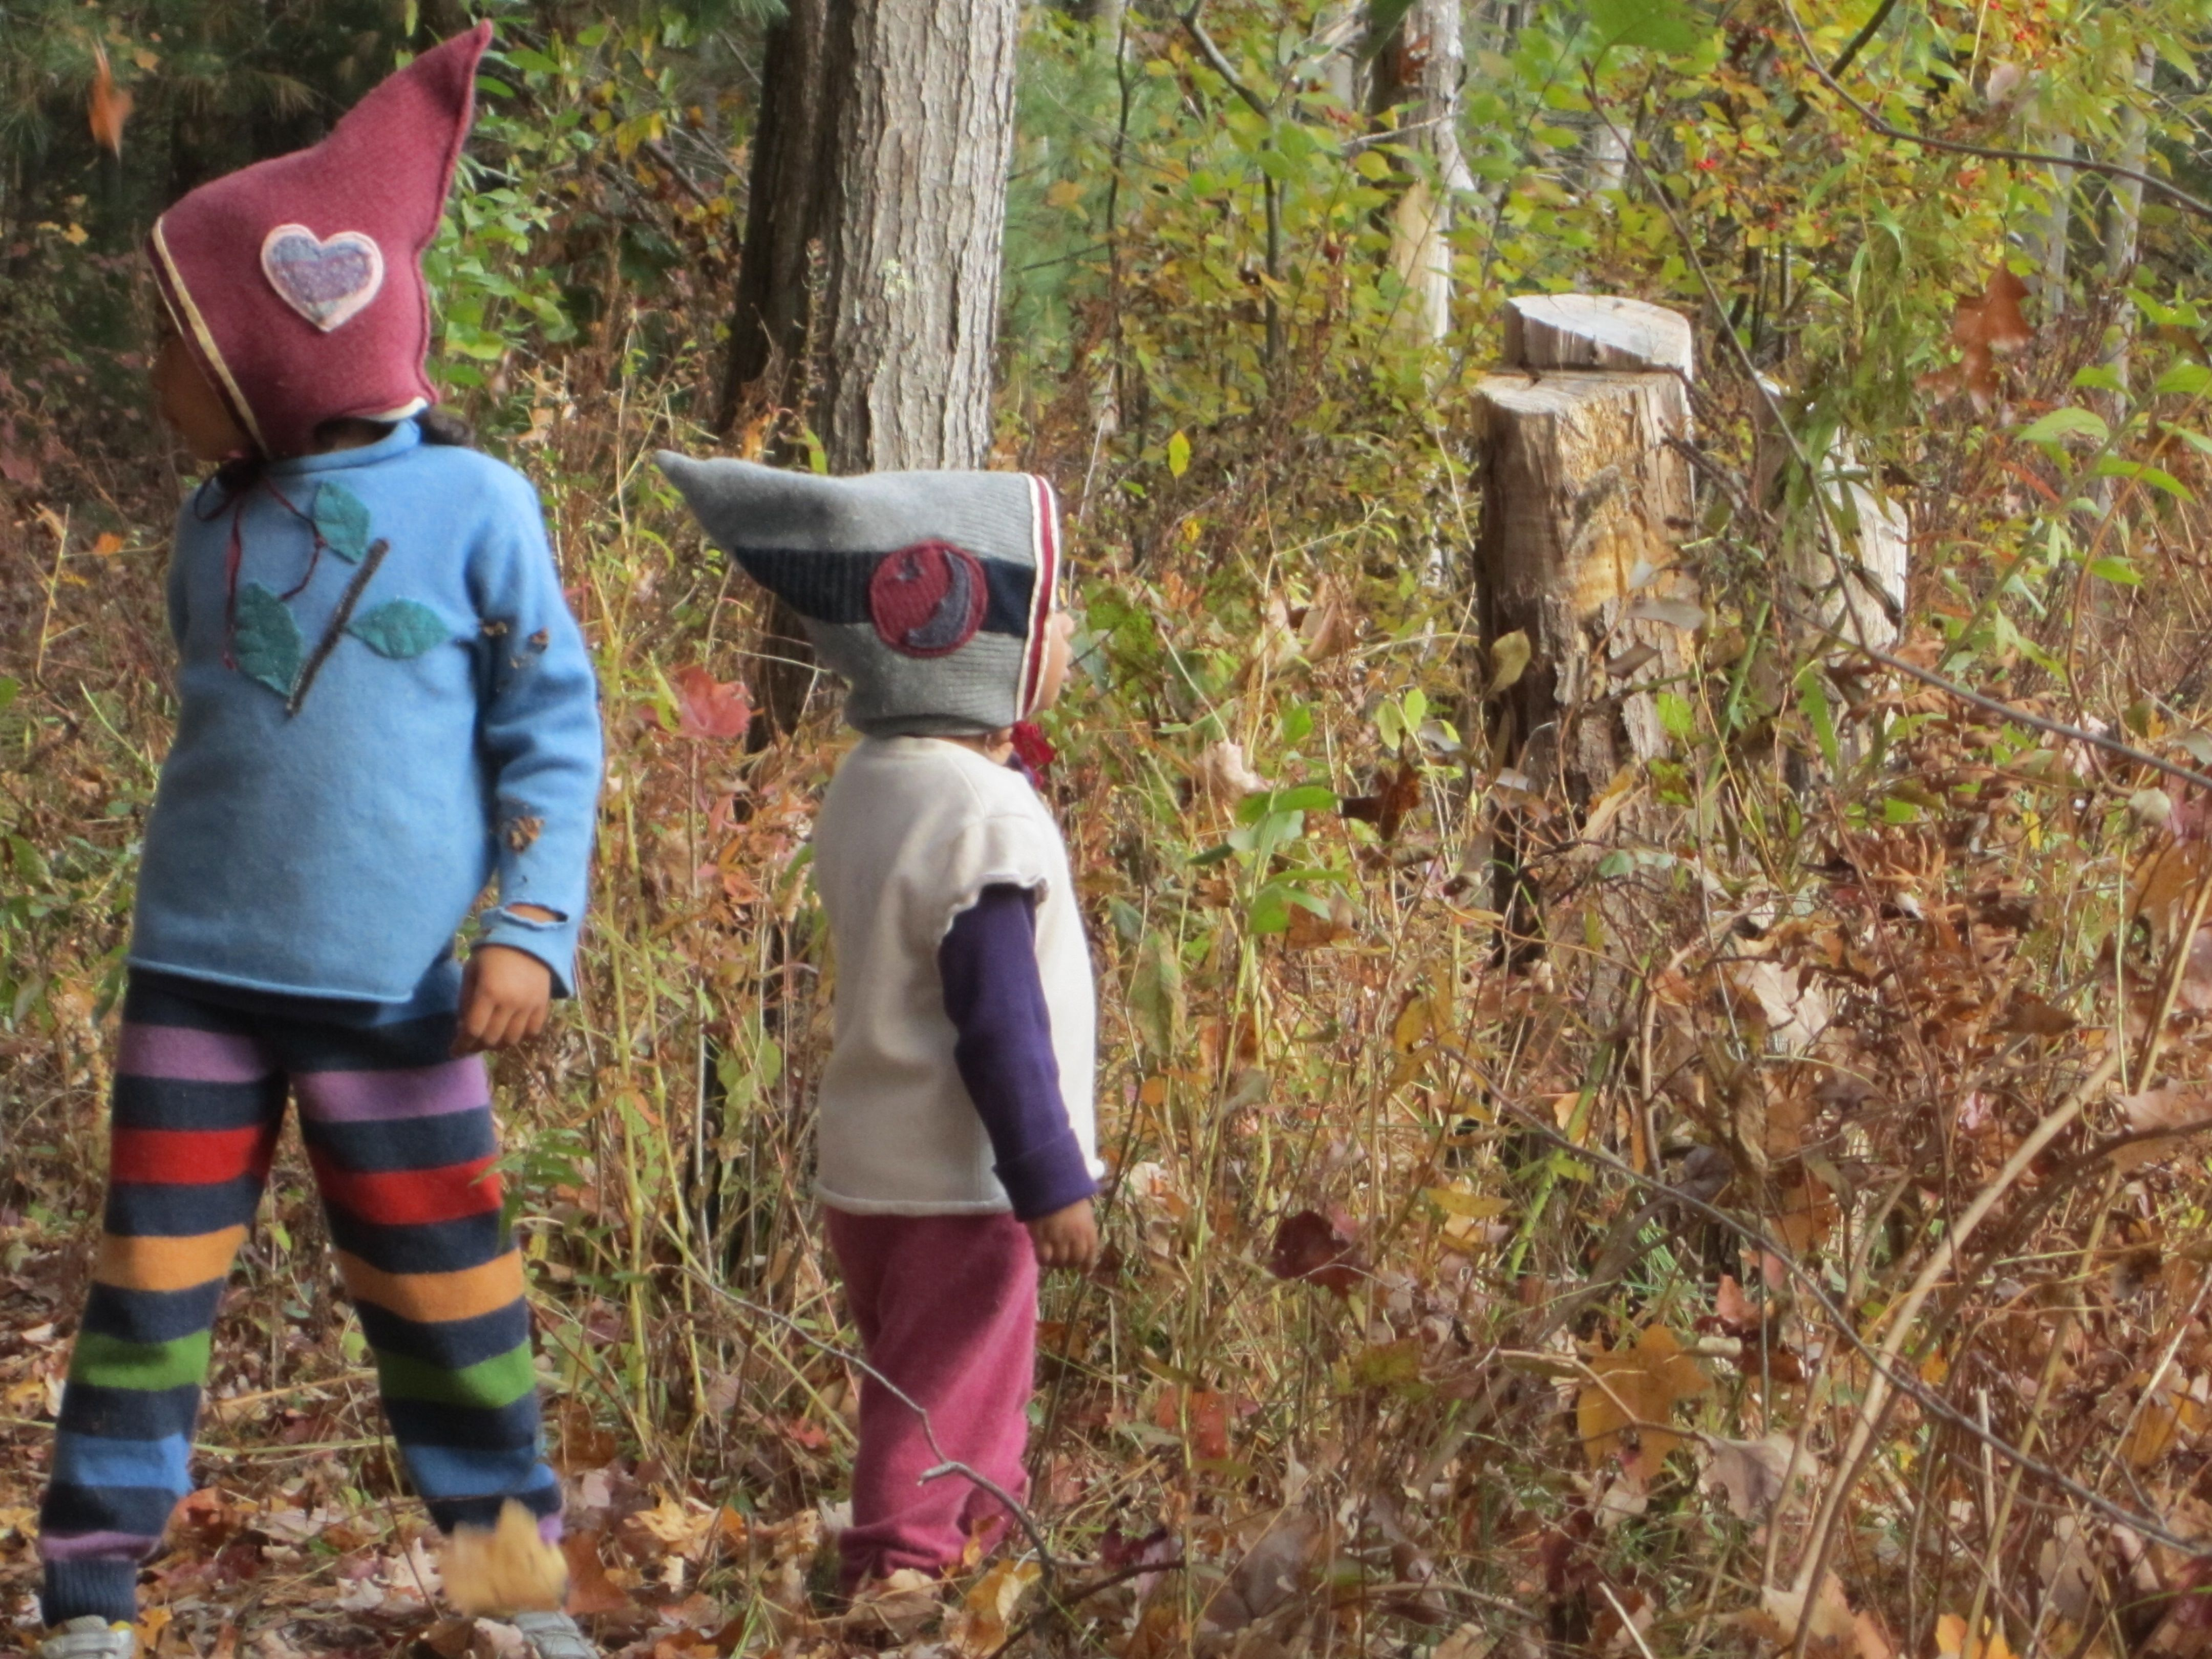 Gnome hats and woolie pants & shirts for my girls- all made with upcycled wool and cashmere sweaters